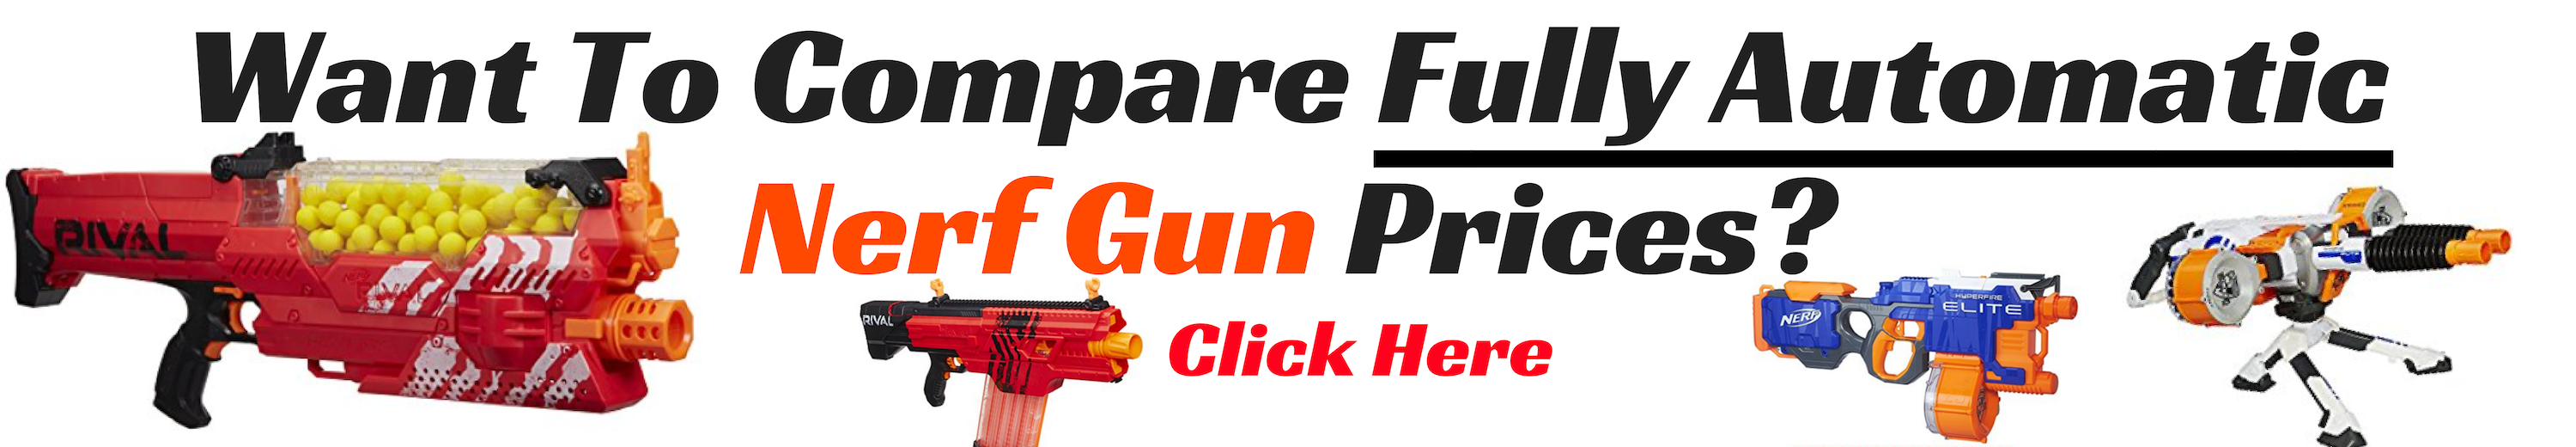 Want To Compare Fully Automatic Nerf Gun Prices